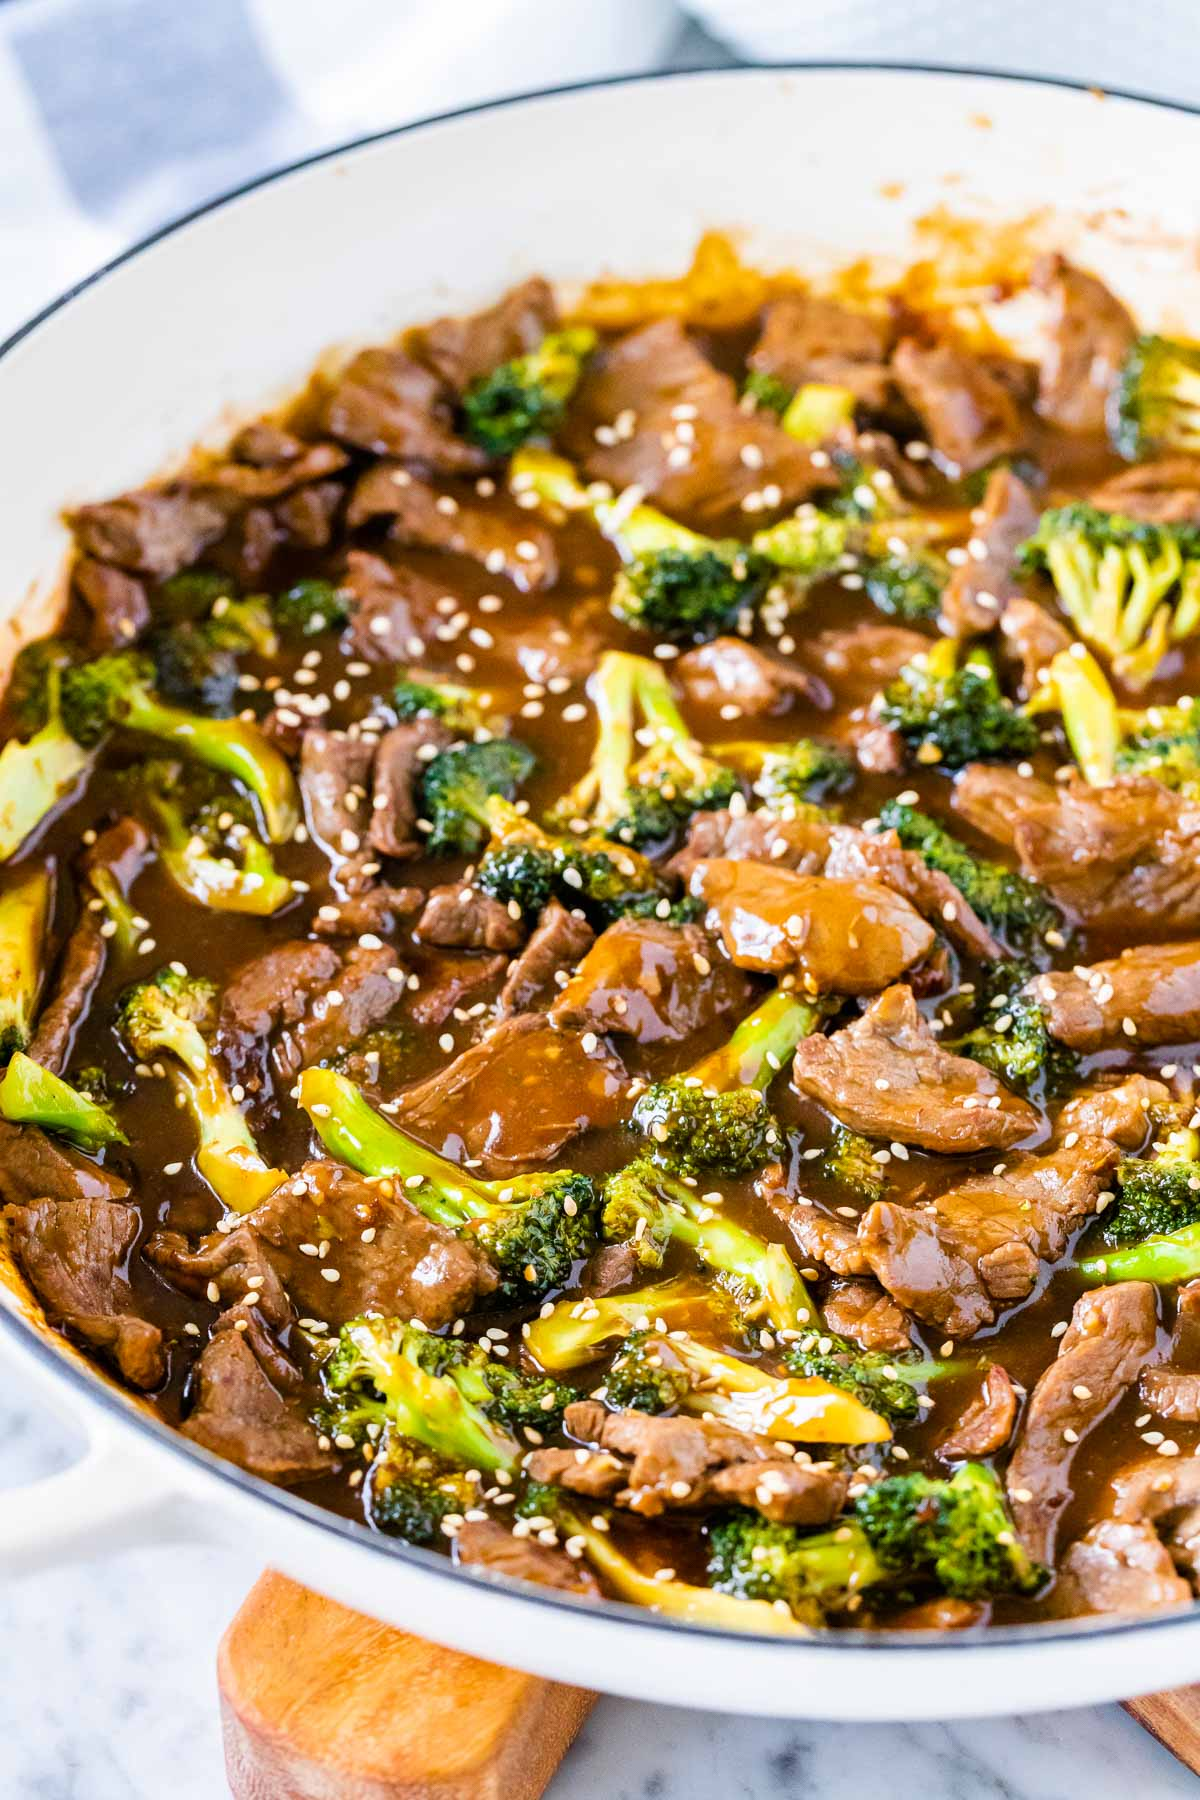 Beef and broccoli stir fry in a white pan